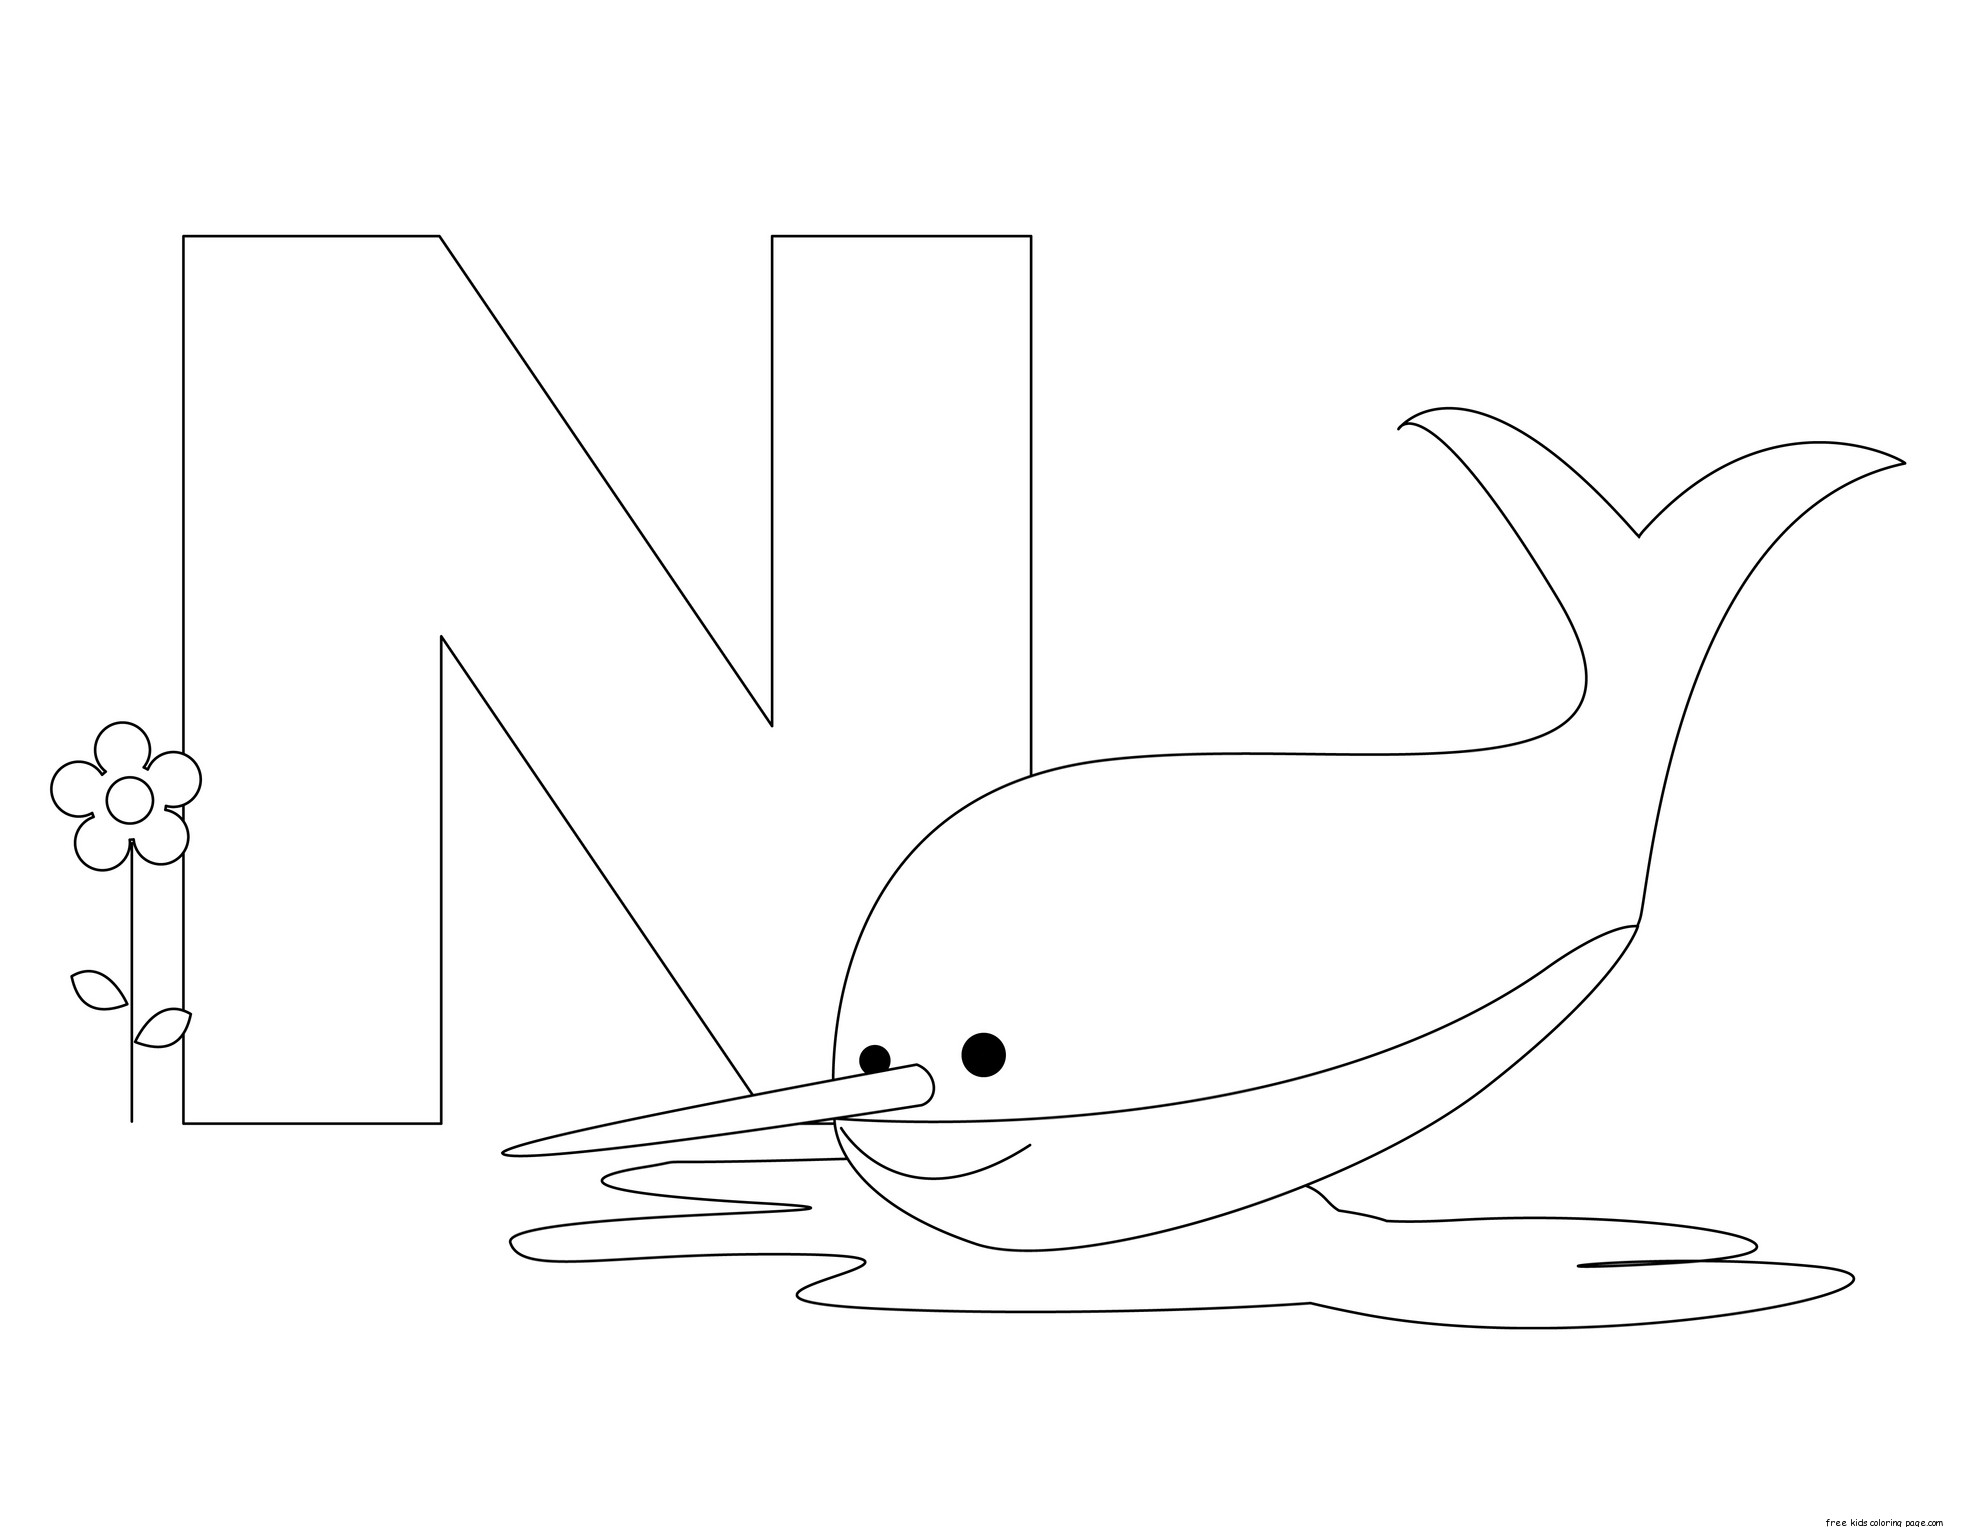 n is for nurse coloring page n is for nurse coloring for kids kids colouring pages is nurse coloring for page n